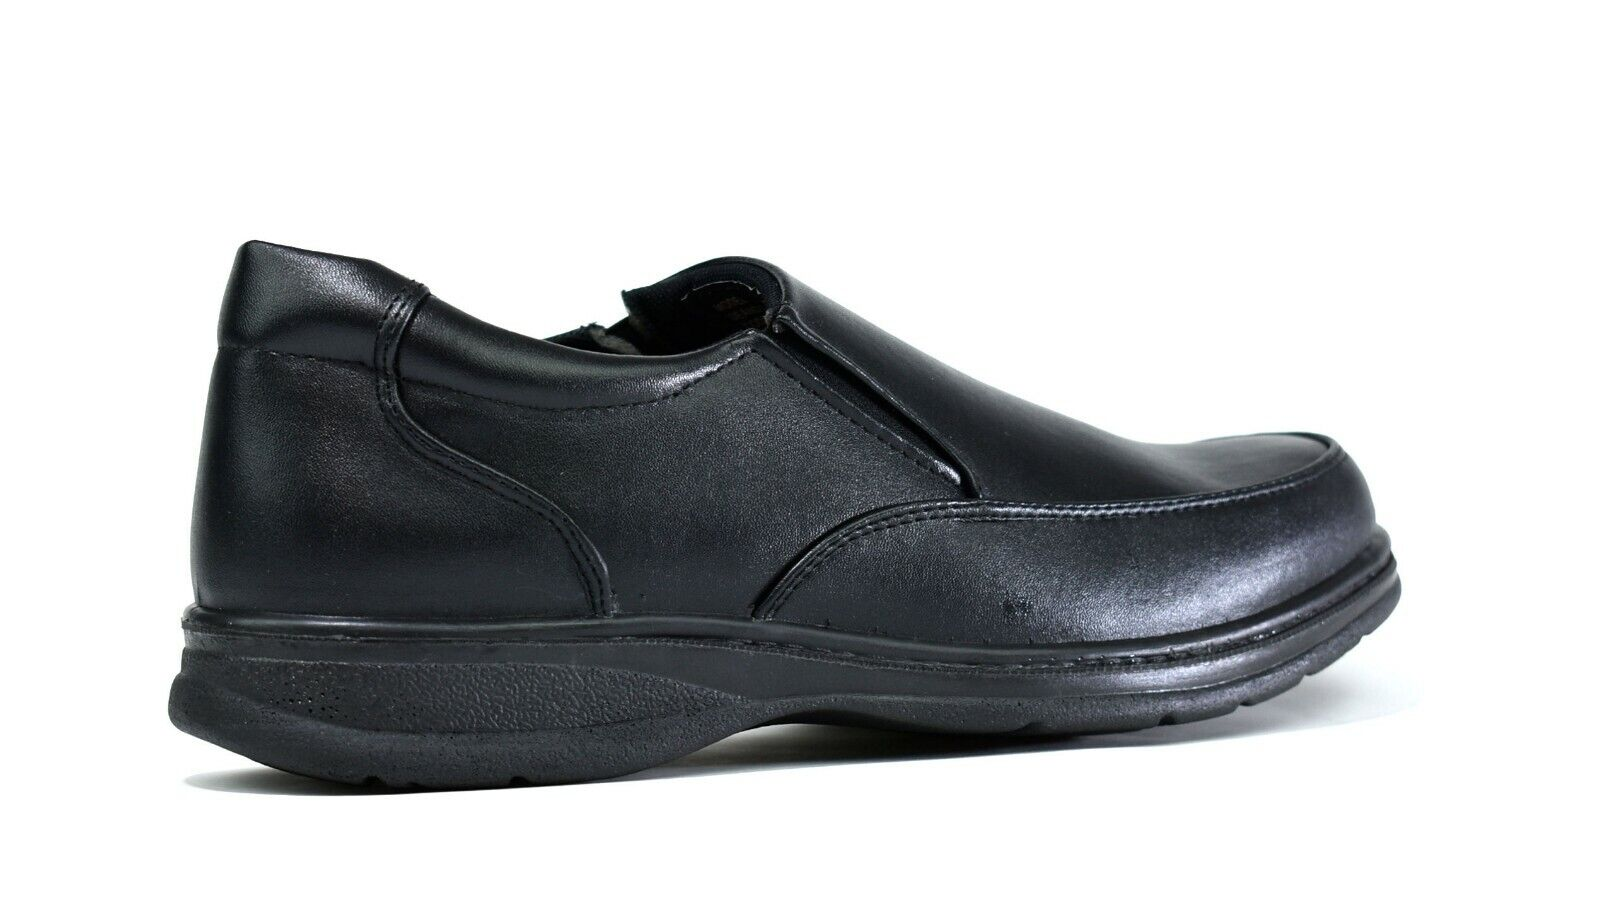 BRAND NEW MEN/'S SMART STITCHED WEDDING PARTY SLIP ON BUCKLE SHOES UK SIZE 6-11